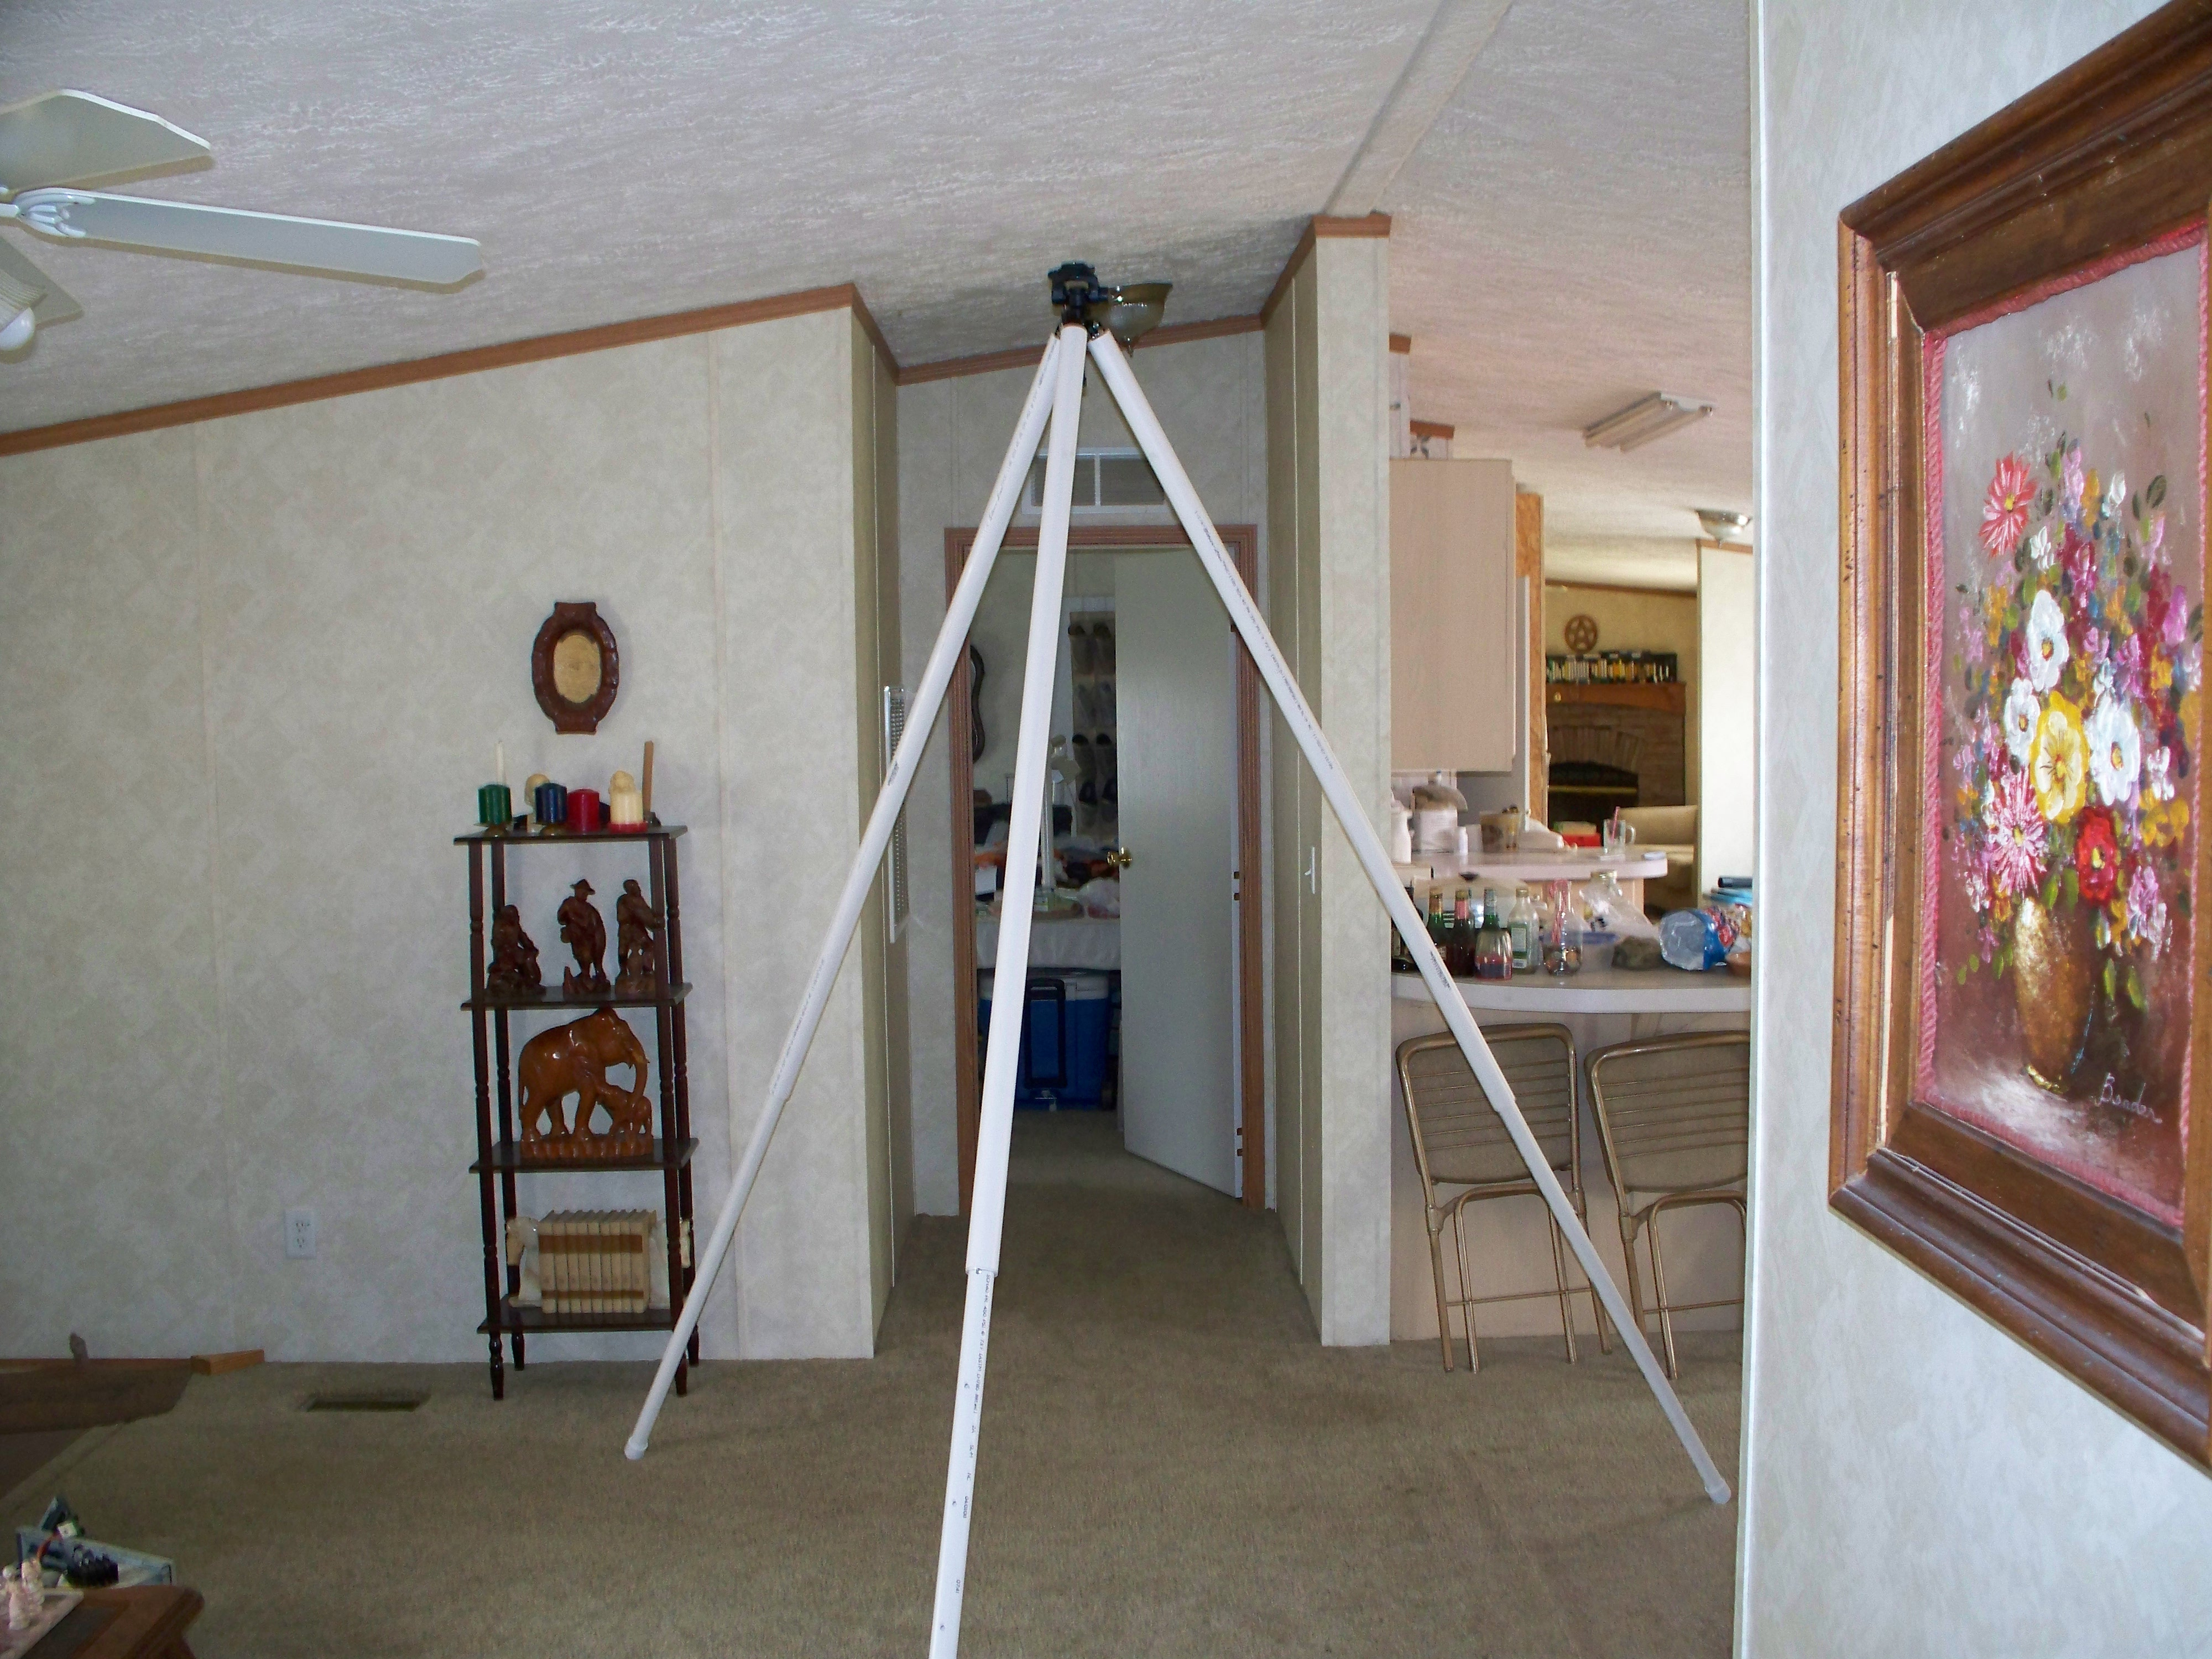 A giant camera tripod on the cheap